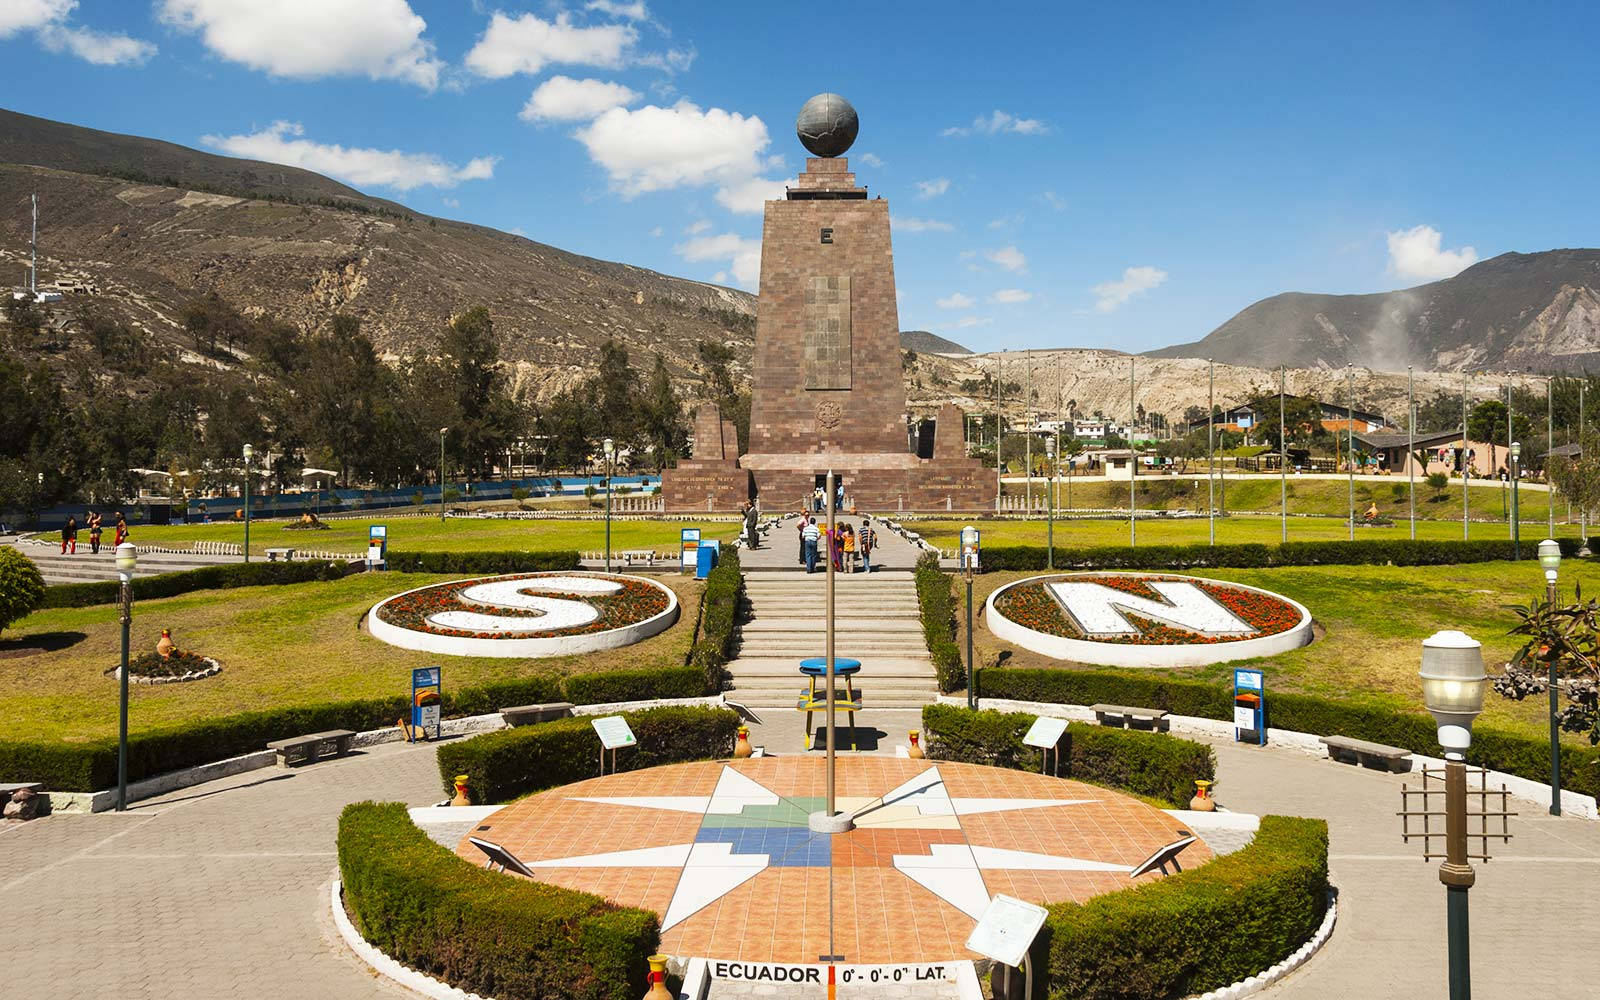 Ecuador, La Mitad del Mundo (Equator) marker Middle of the Earth latitude longitude monument